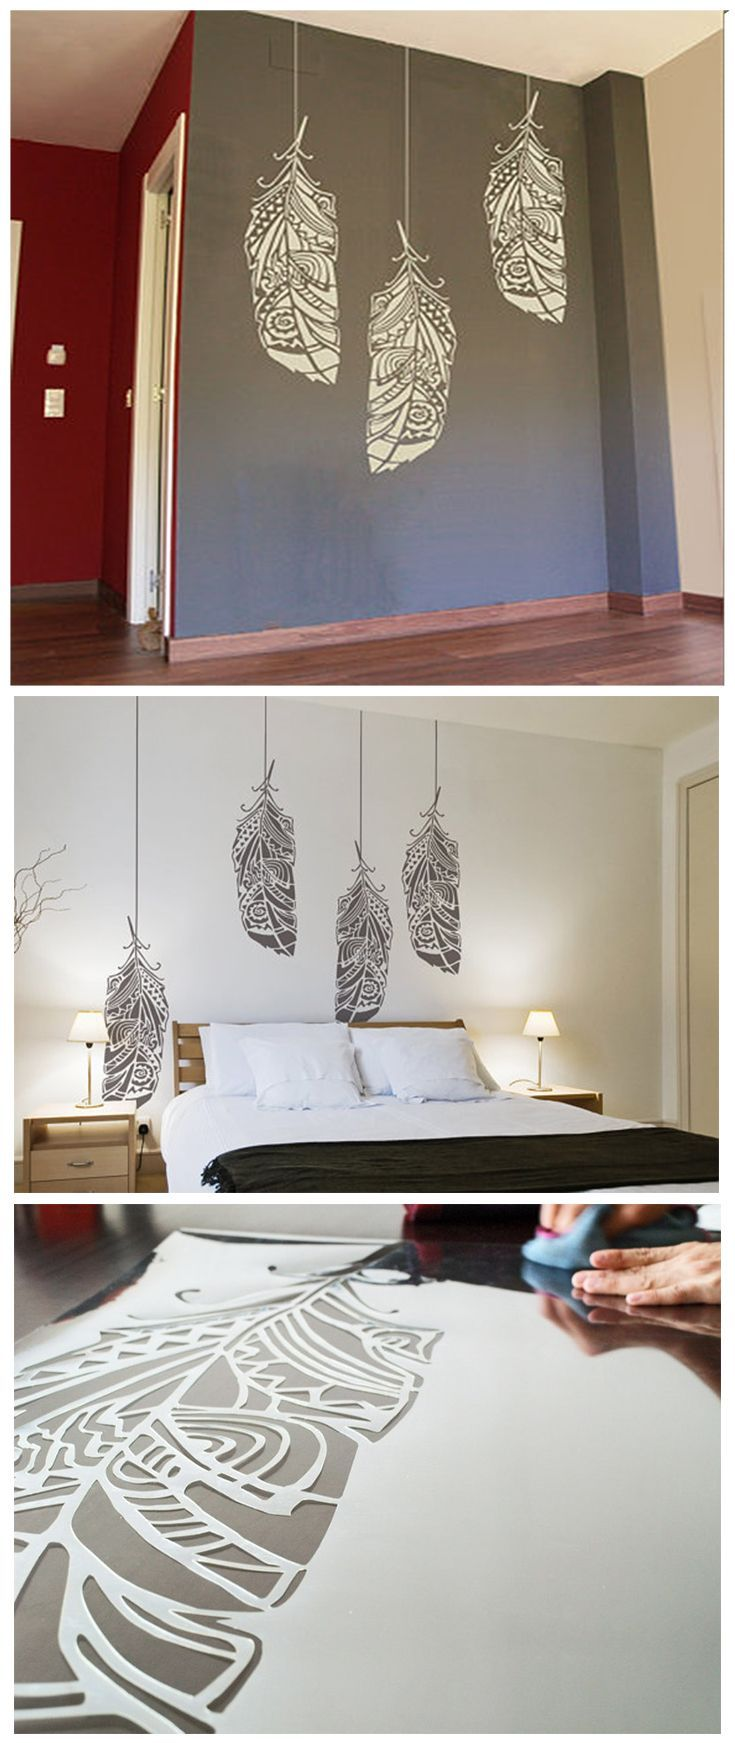 Painting Patterns On Walls Best 25 Diy Wall Painting Ideas On Pinterest Paint Walls